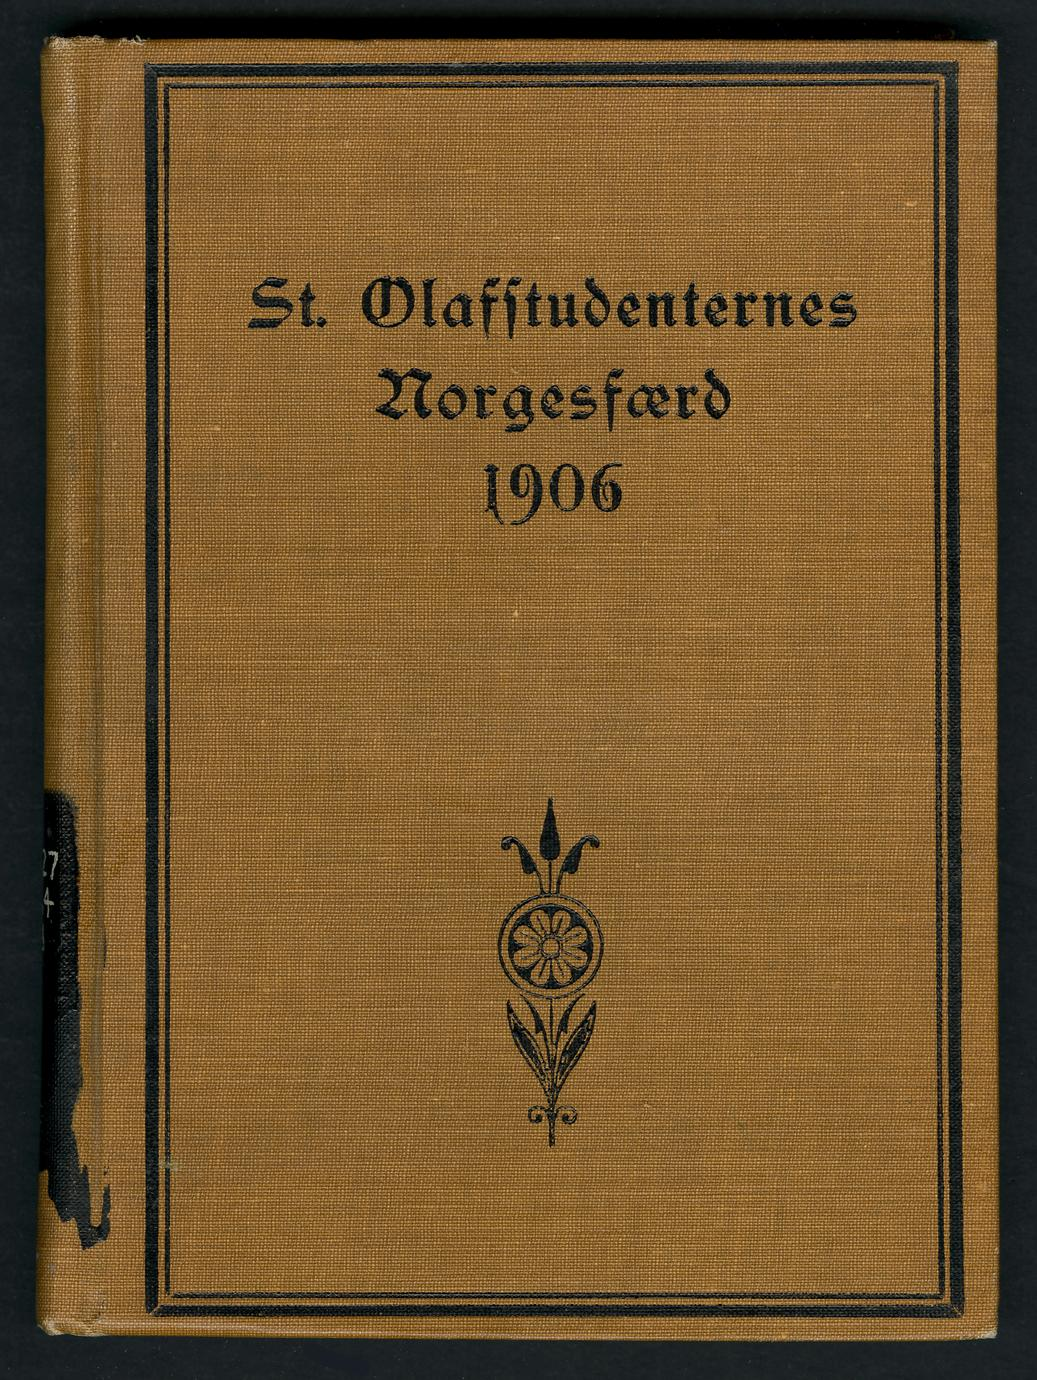 St. Olafstudenternes Norgesfærd 1906 (1 of 2)